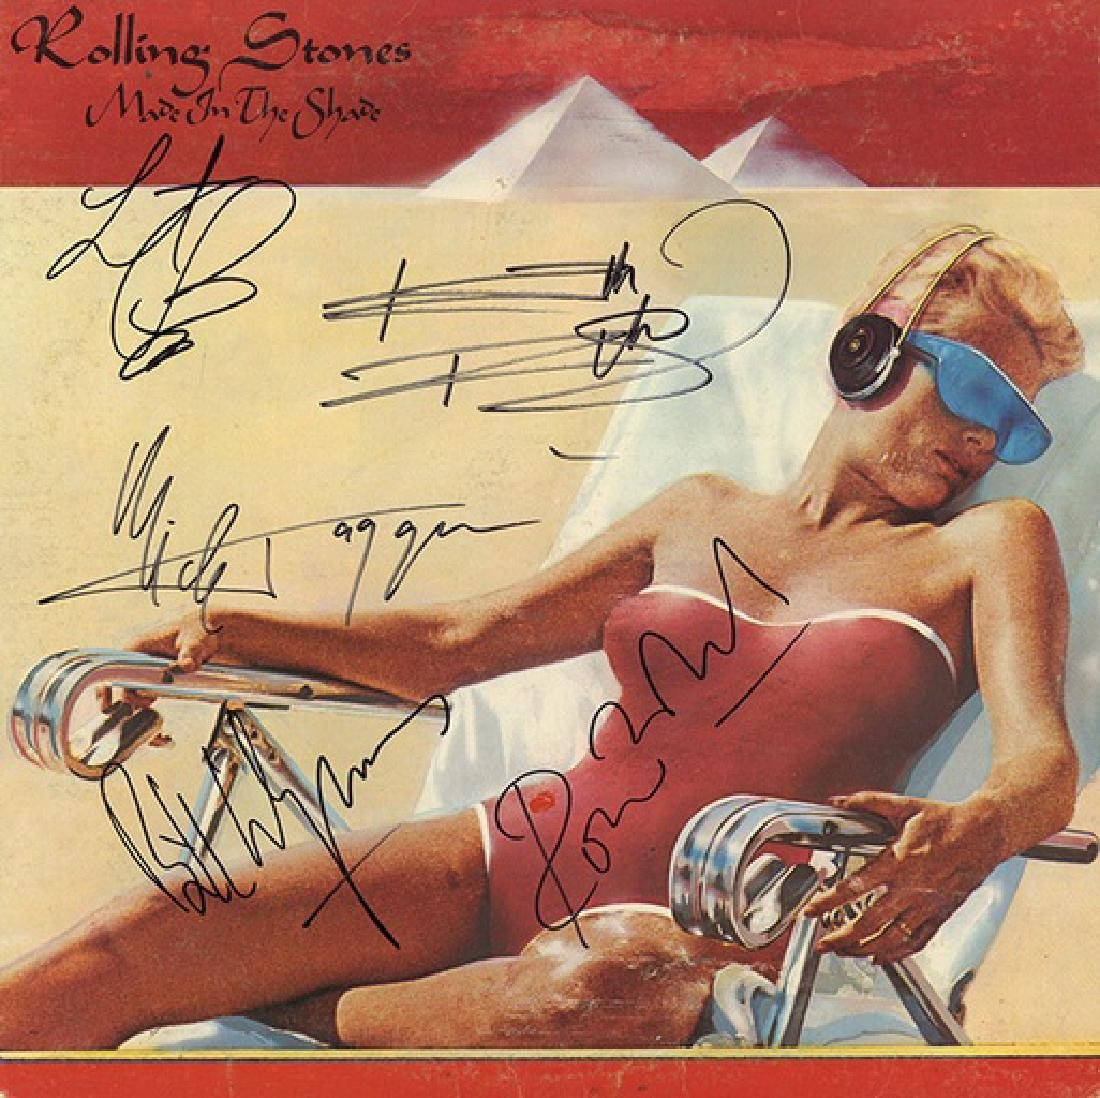 """Rolling Stones """"Made in the Shade"""" Album"""